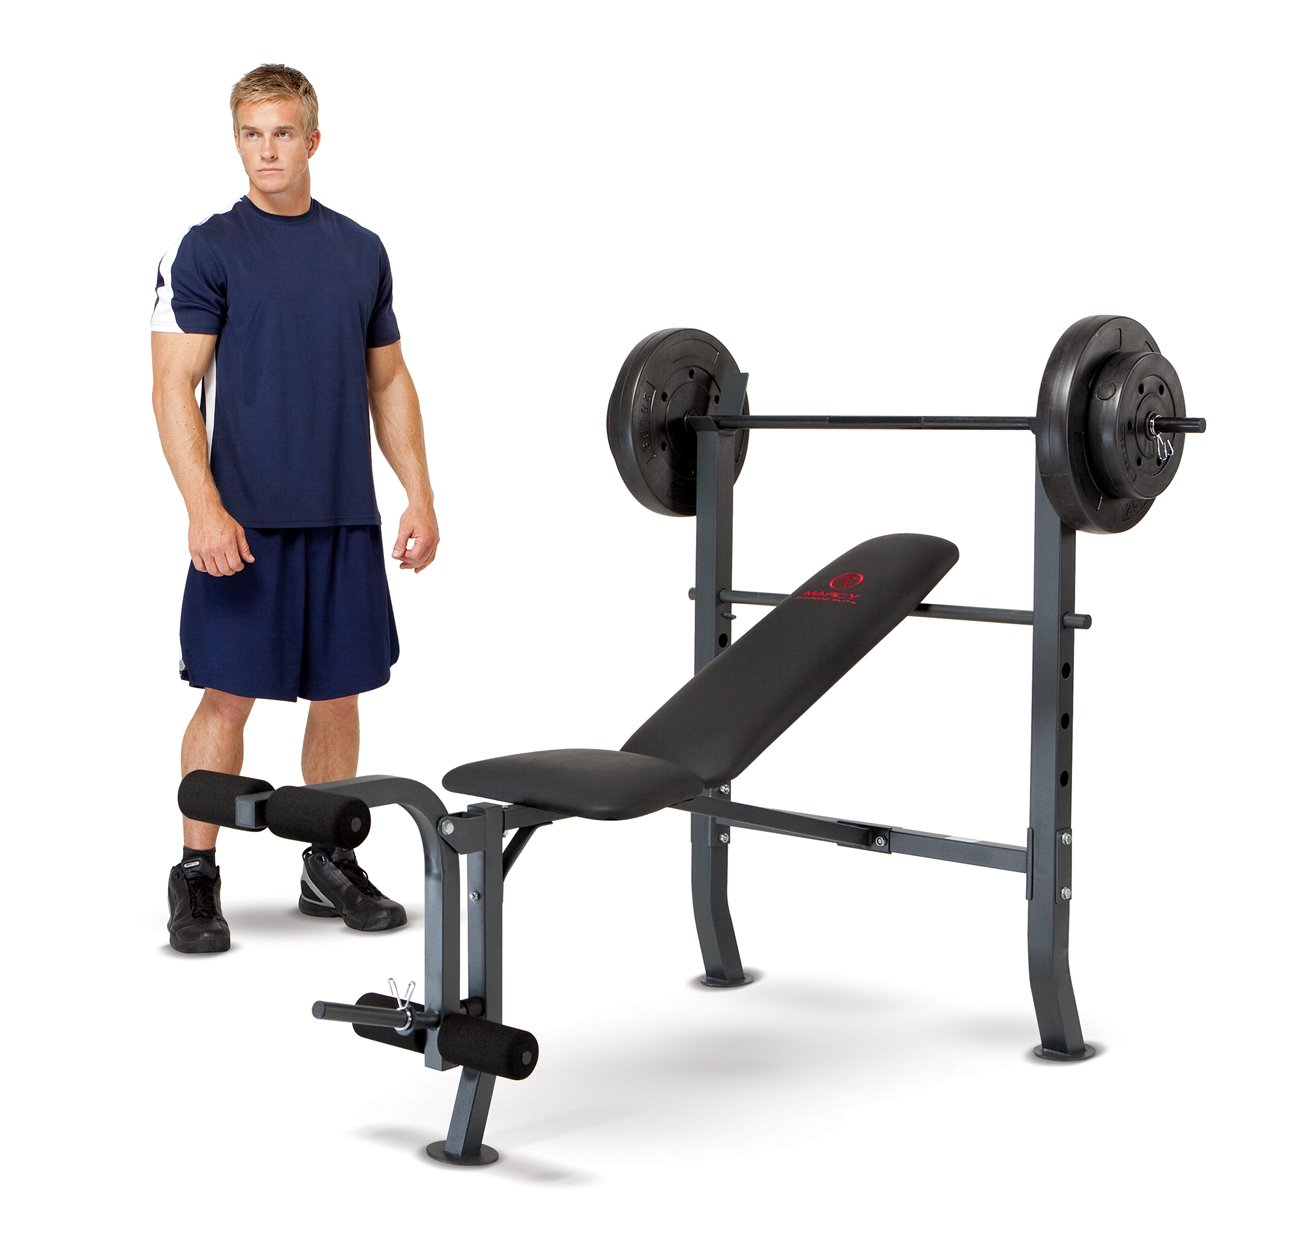 Marcy standard bench with lb weight set home gym workout